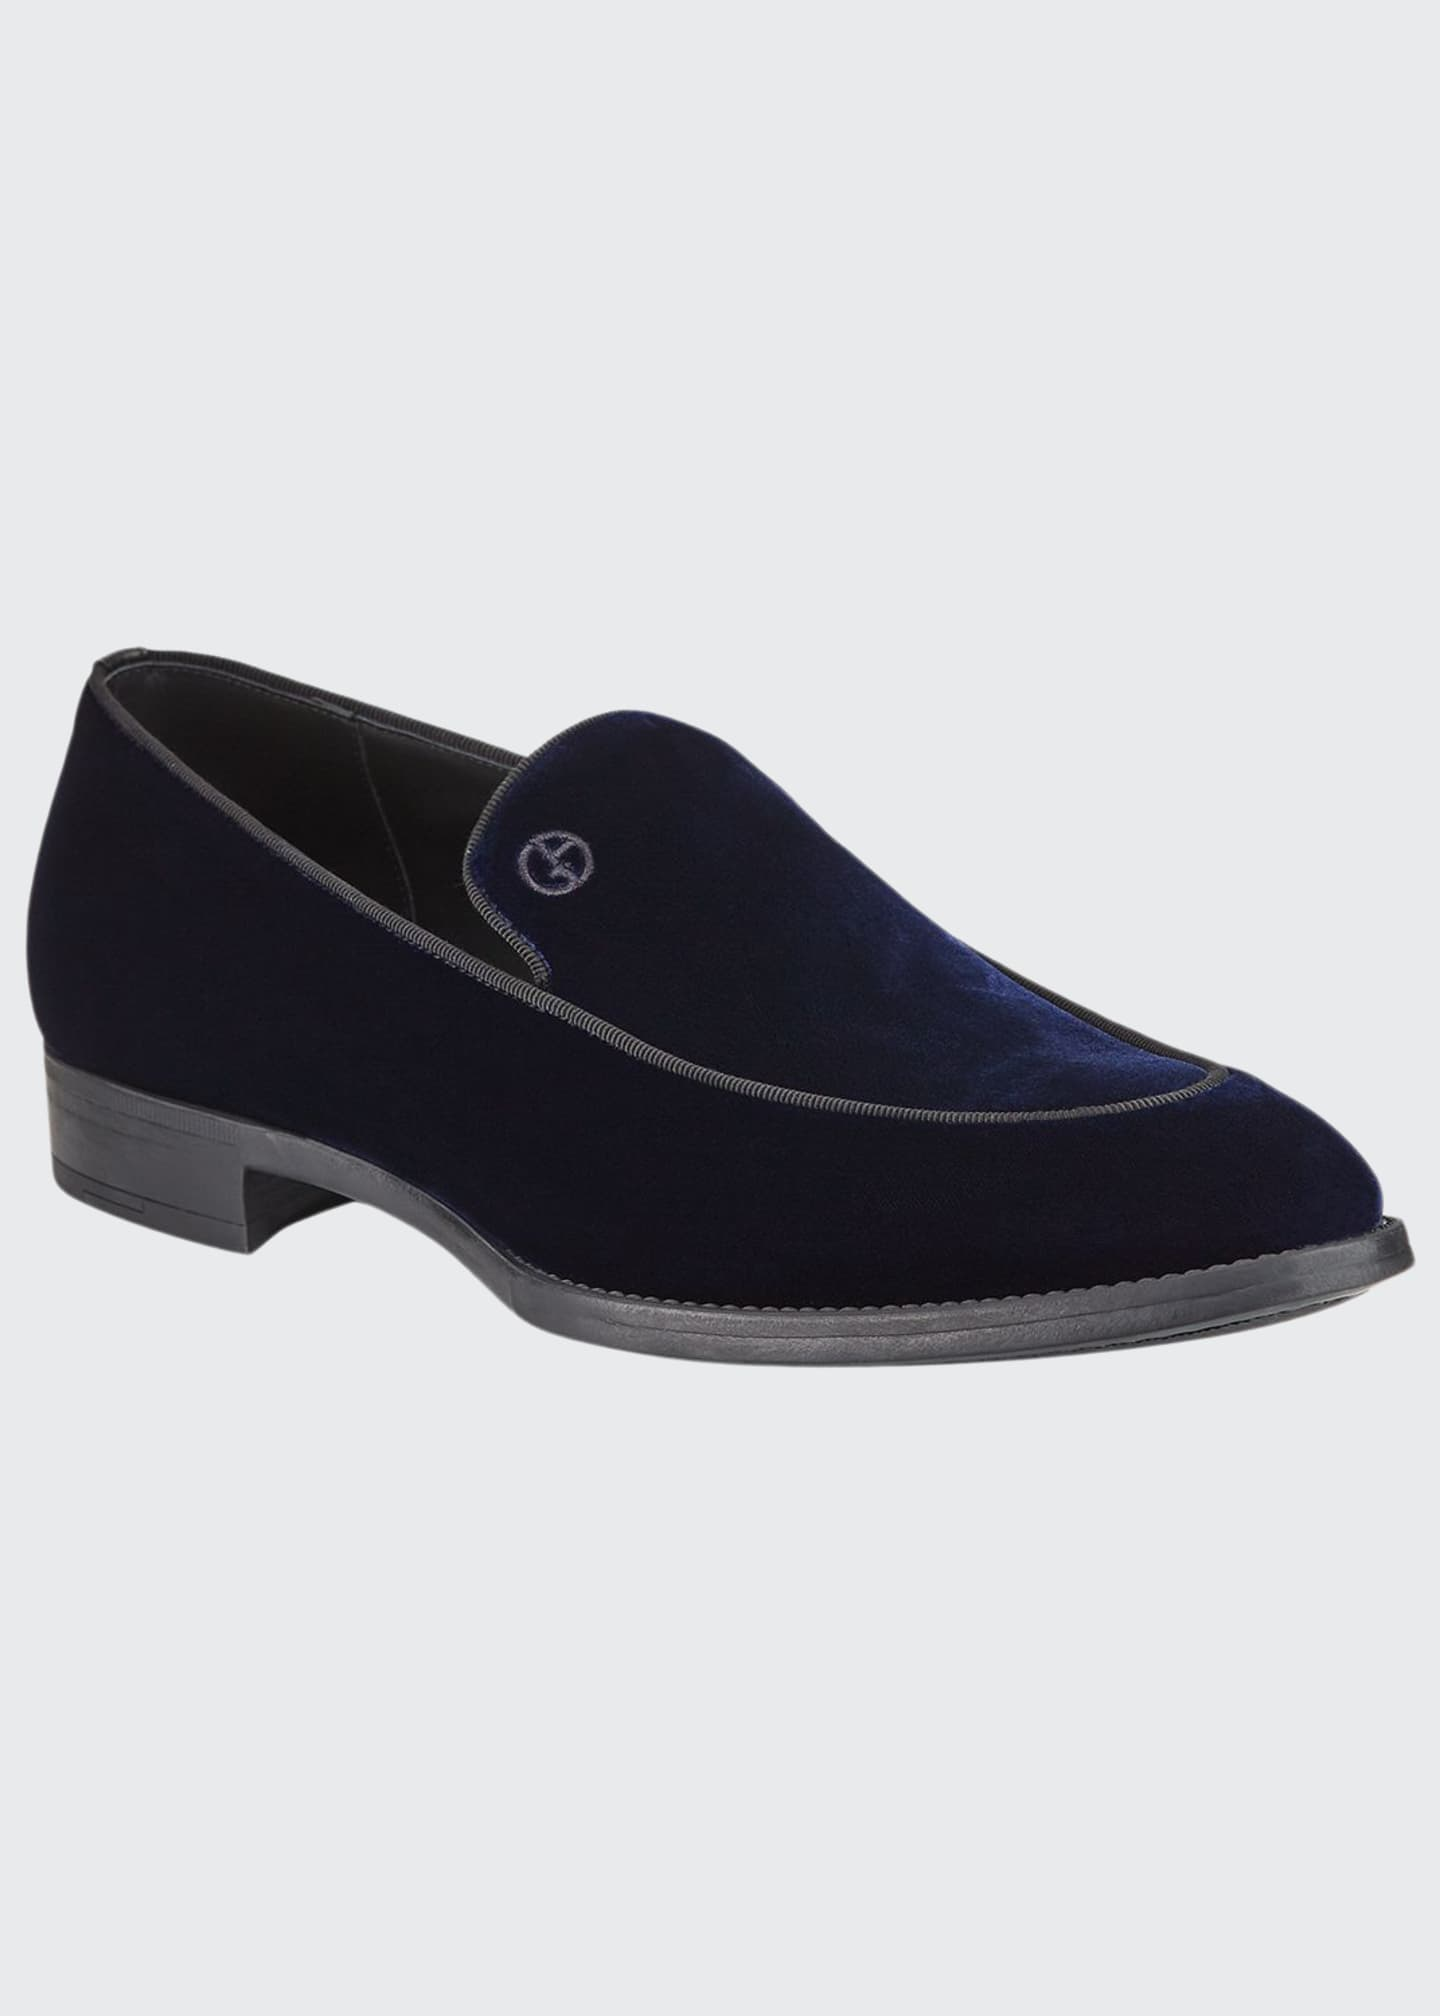 Image 1 of 3: Men's Velvet Formal Loafers, Navy